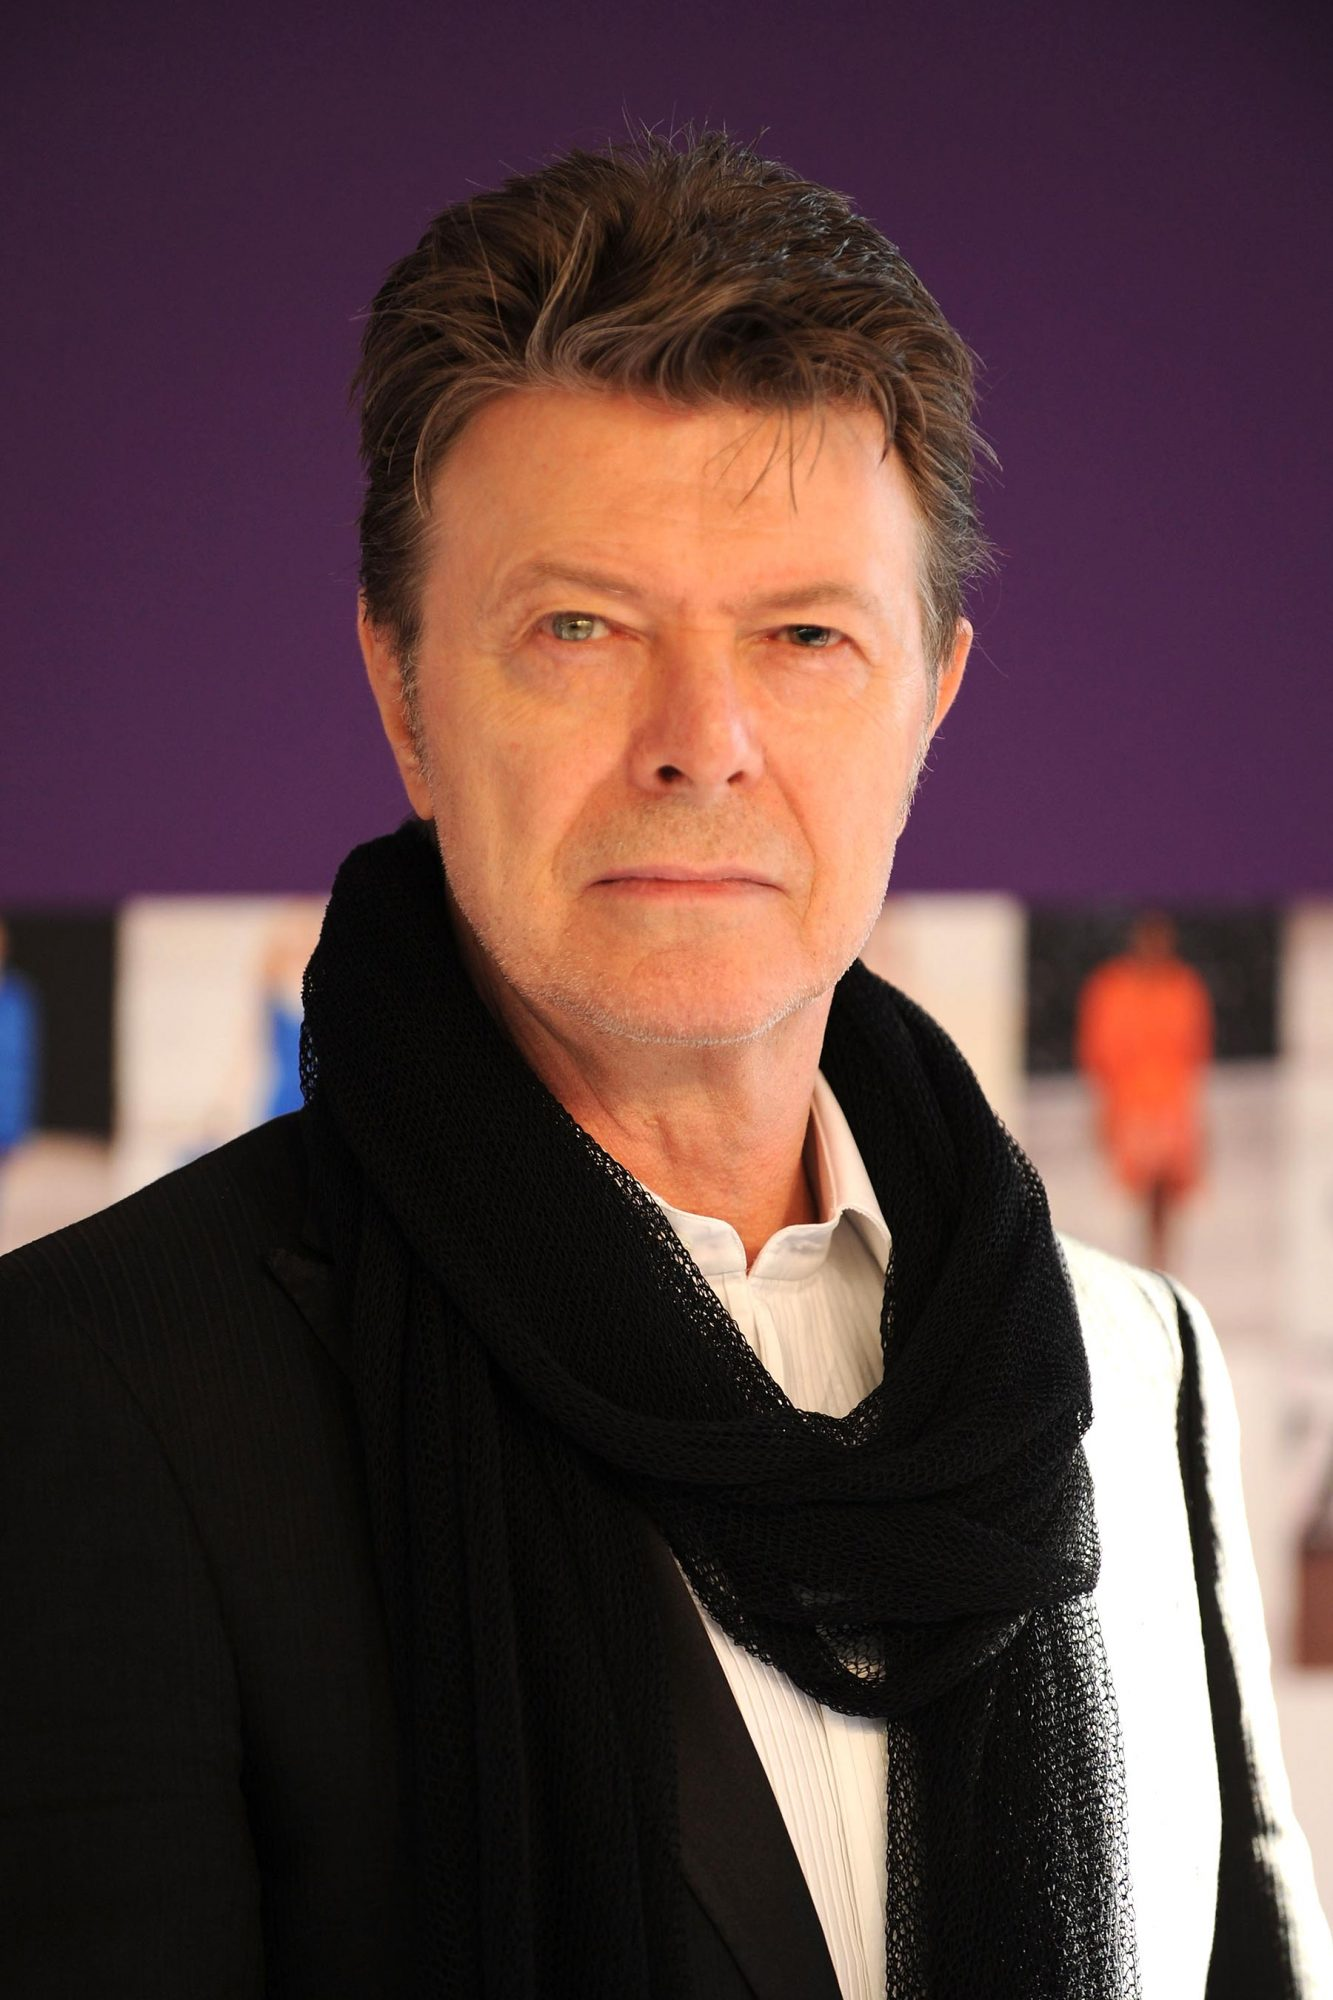 (FILE PHOTO) New David Bowie Album Released